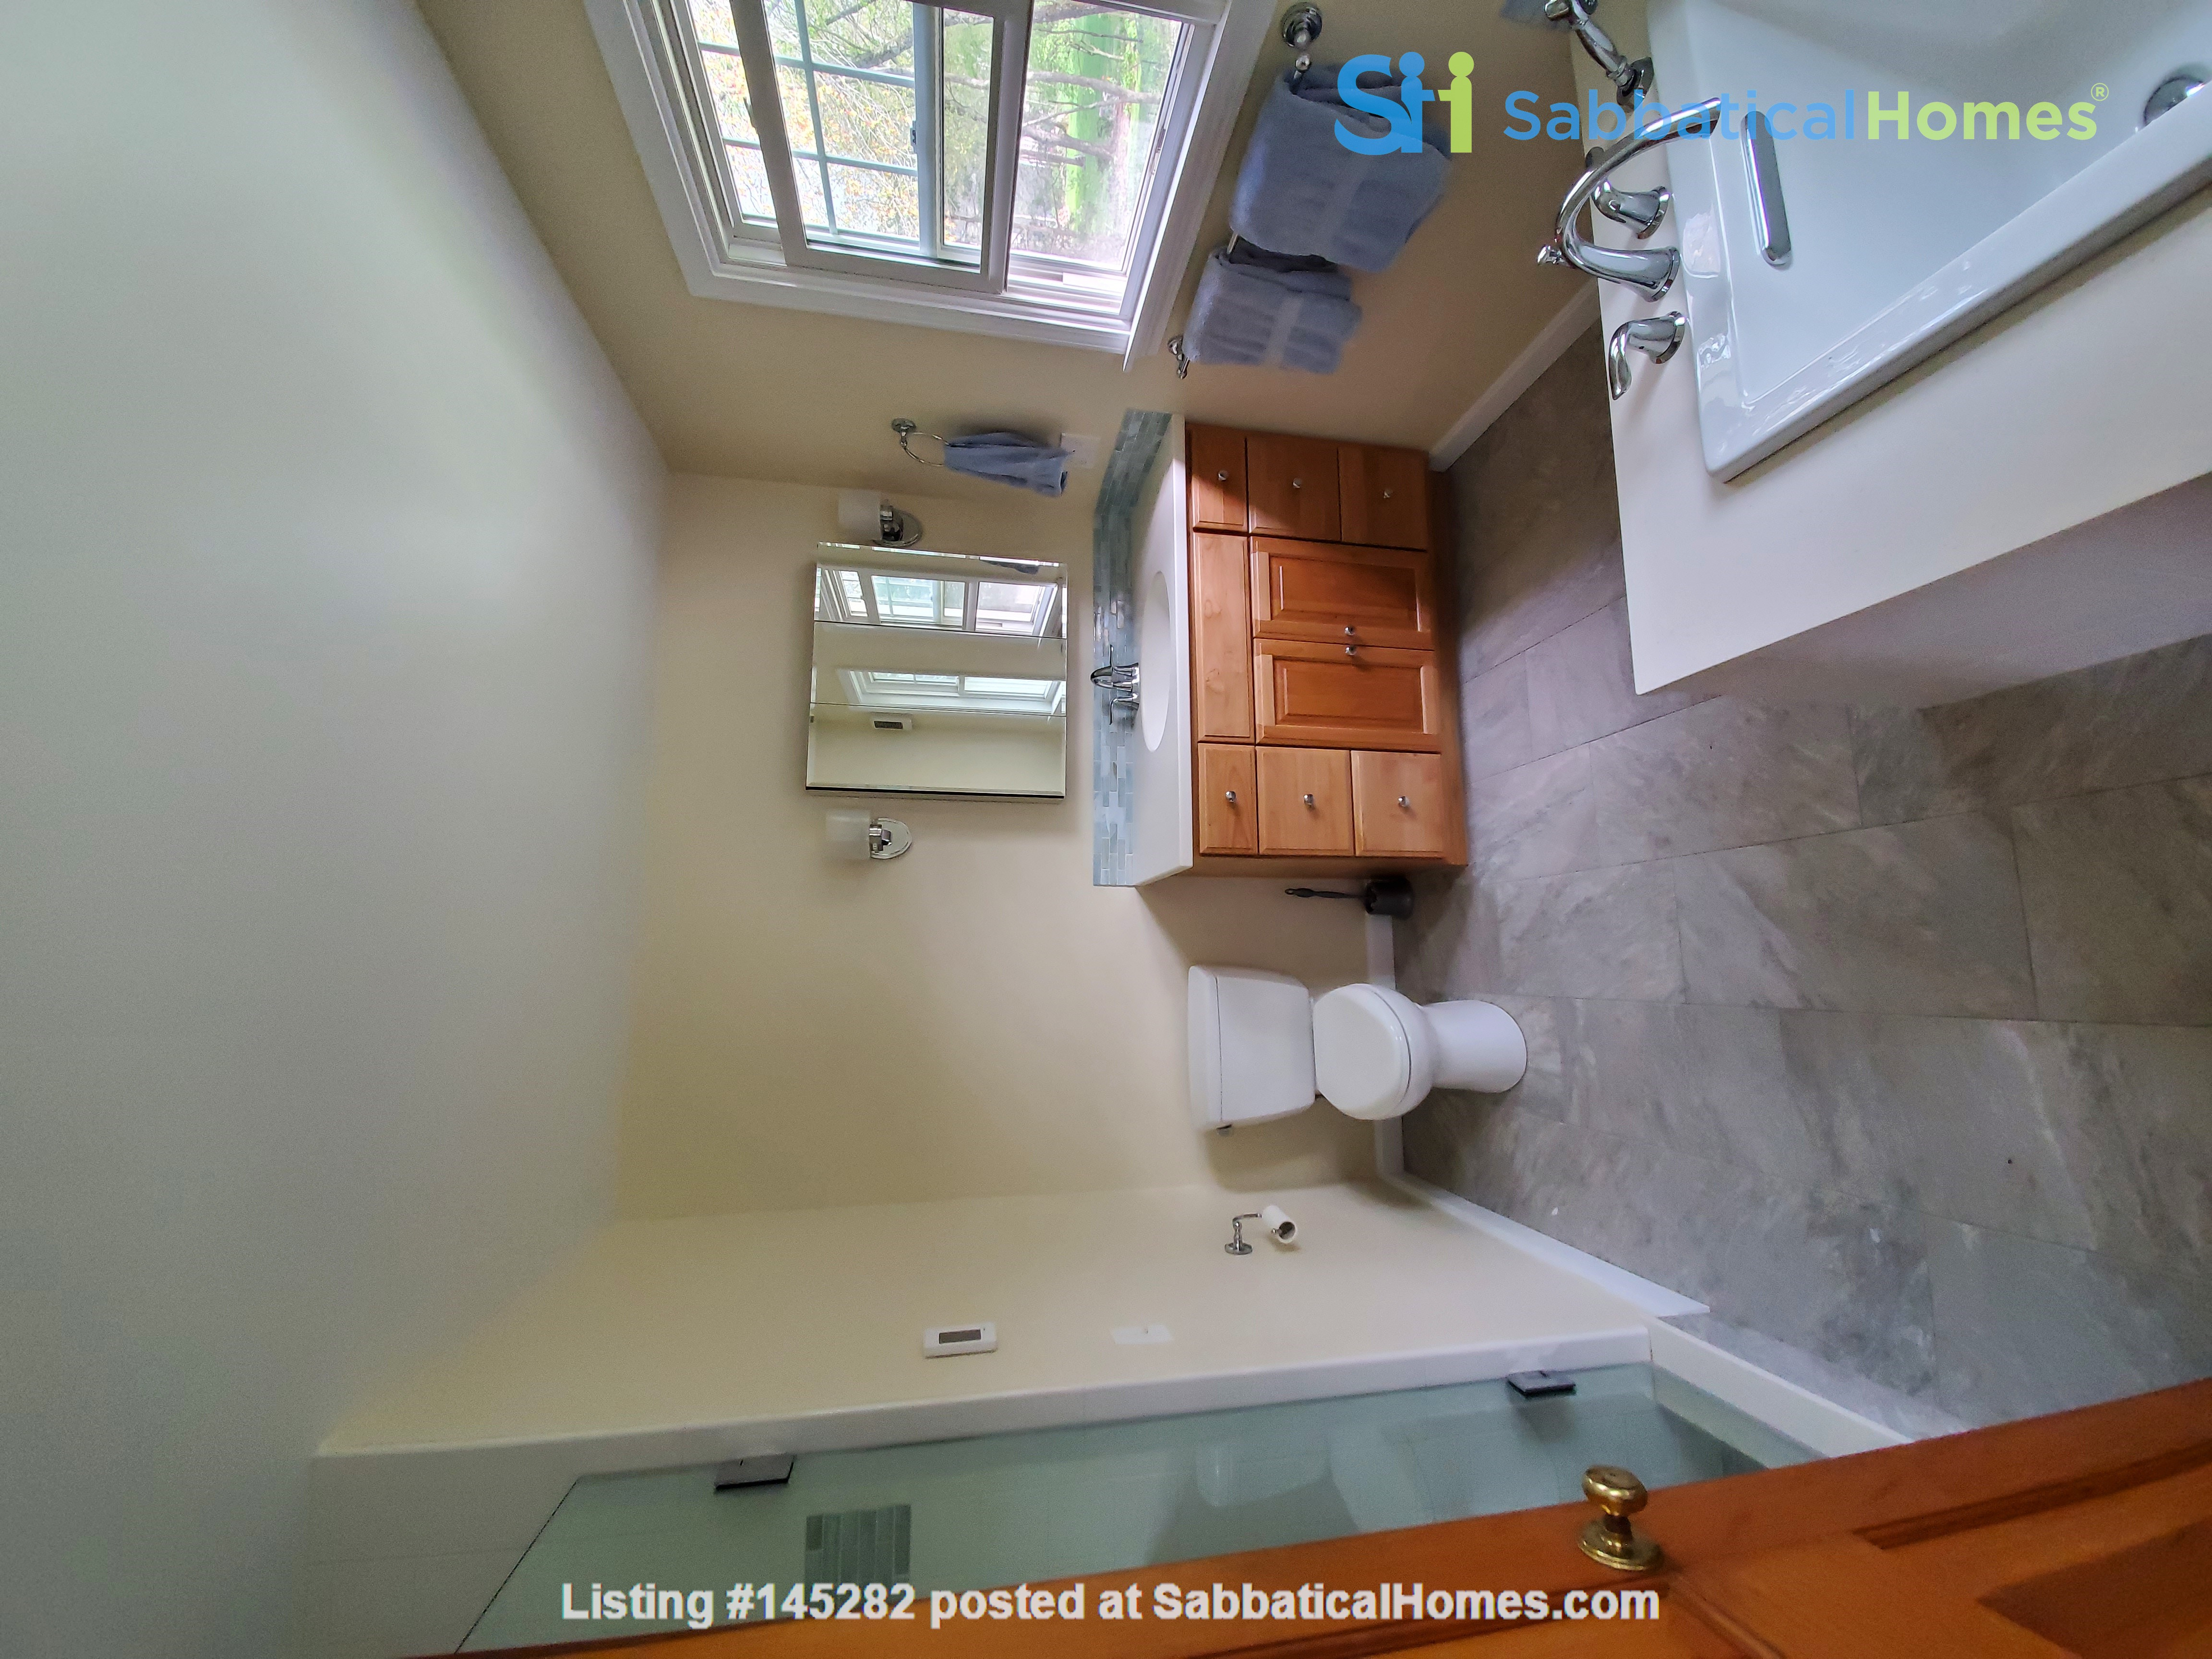 Spacious, Peaceful Getaway in Beautiful Amherst, MA, 4 BR 3.5 ba Home Rental in Amherst, Massachusetts, United States 4